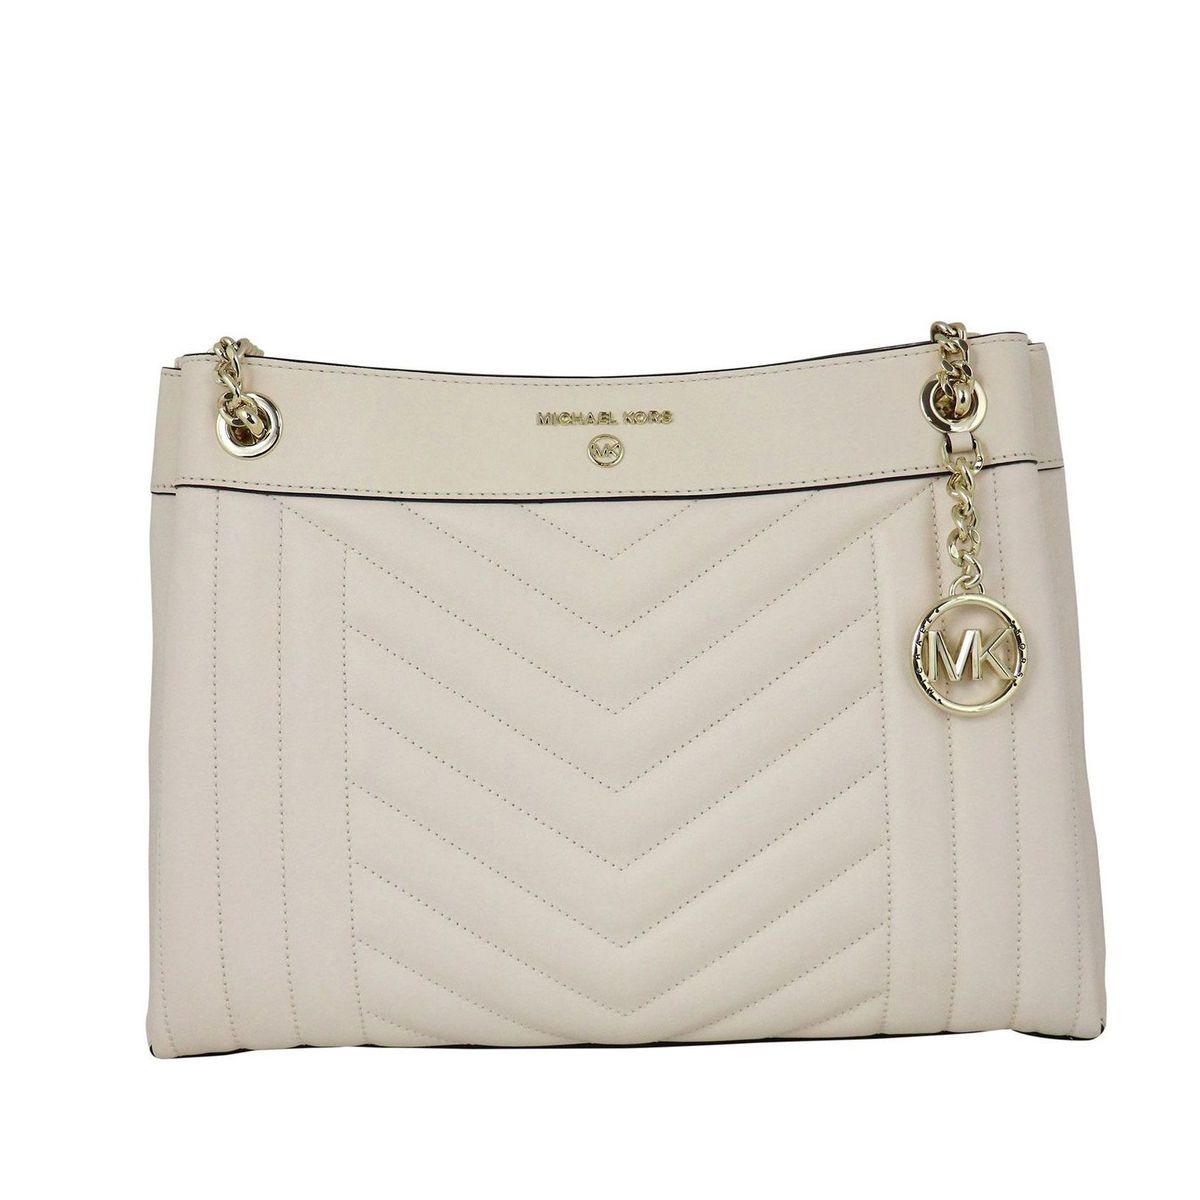 Bag in matelassé leather with details and golden chains Milk Michael Kors